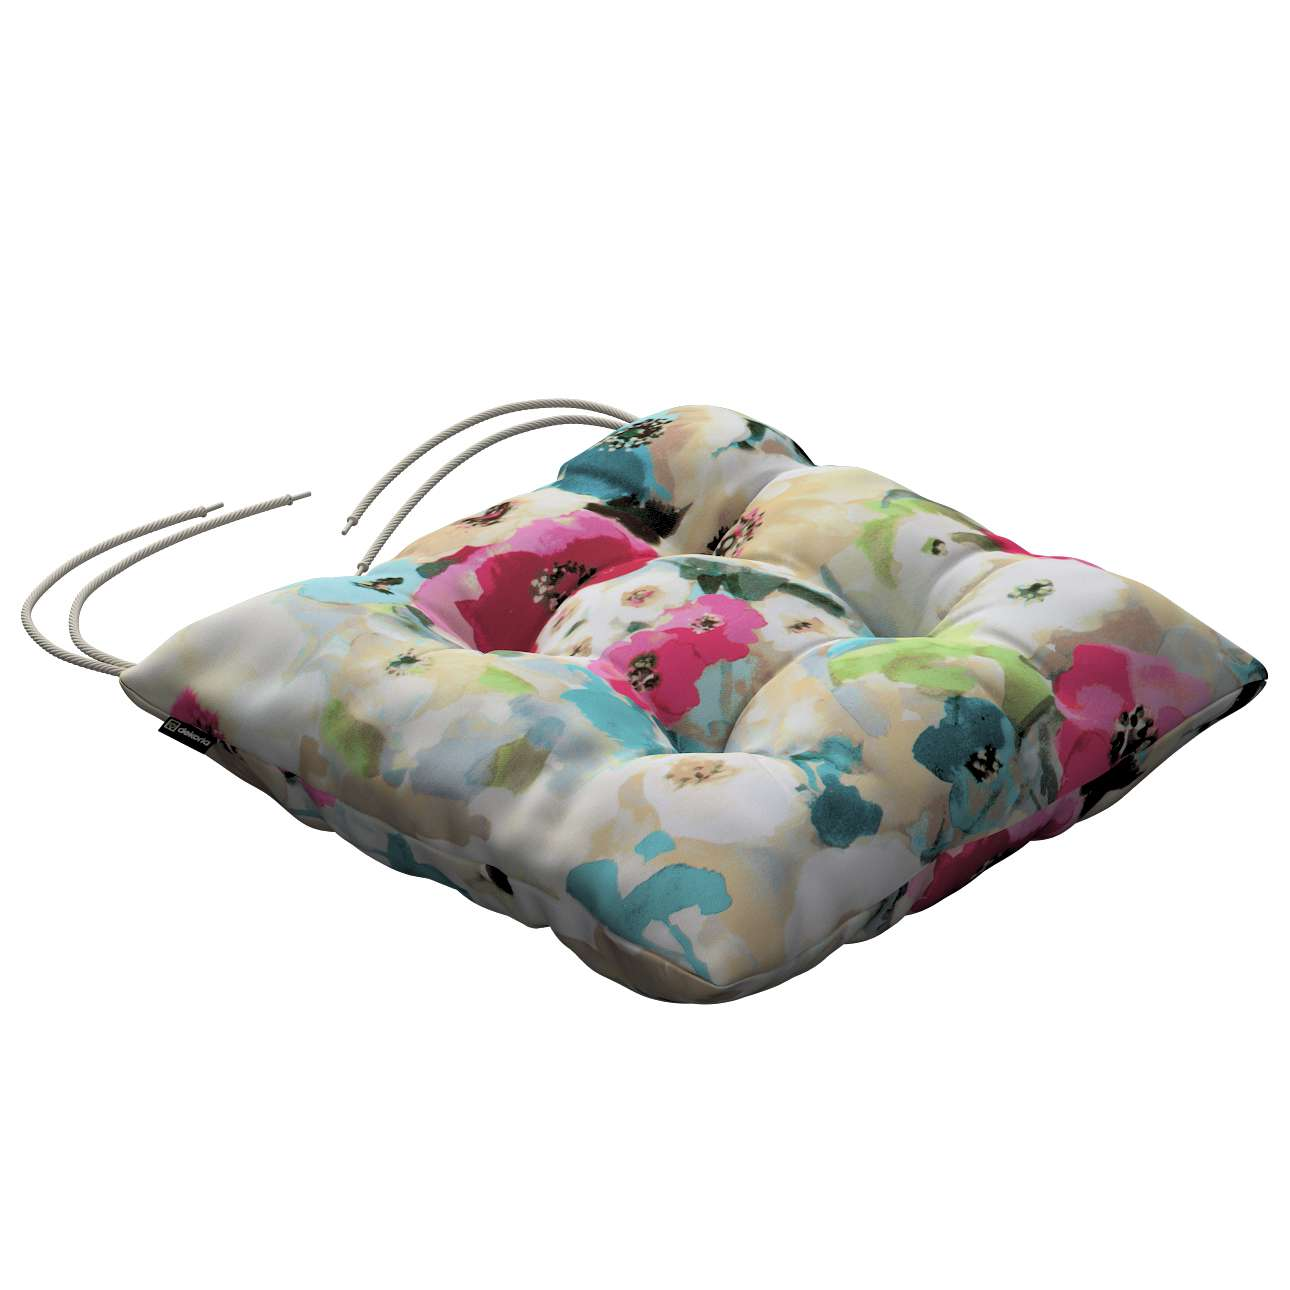 Jack seat pad with ties in collection Monet, fabric: 140-08